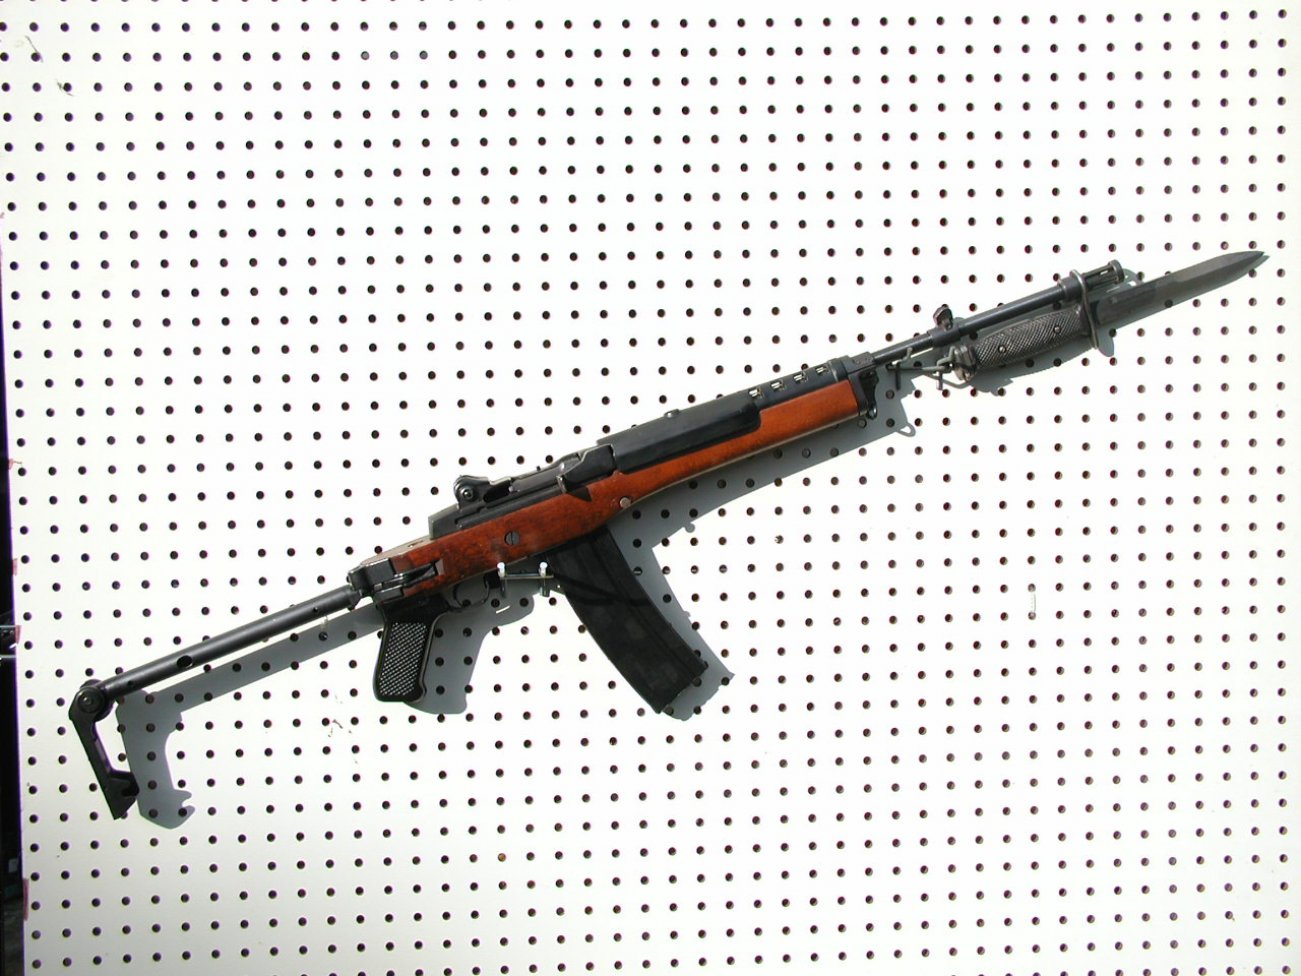 The Ruger Mini-14 Rifle: An Underestimated but Very Capable Weapon